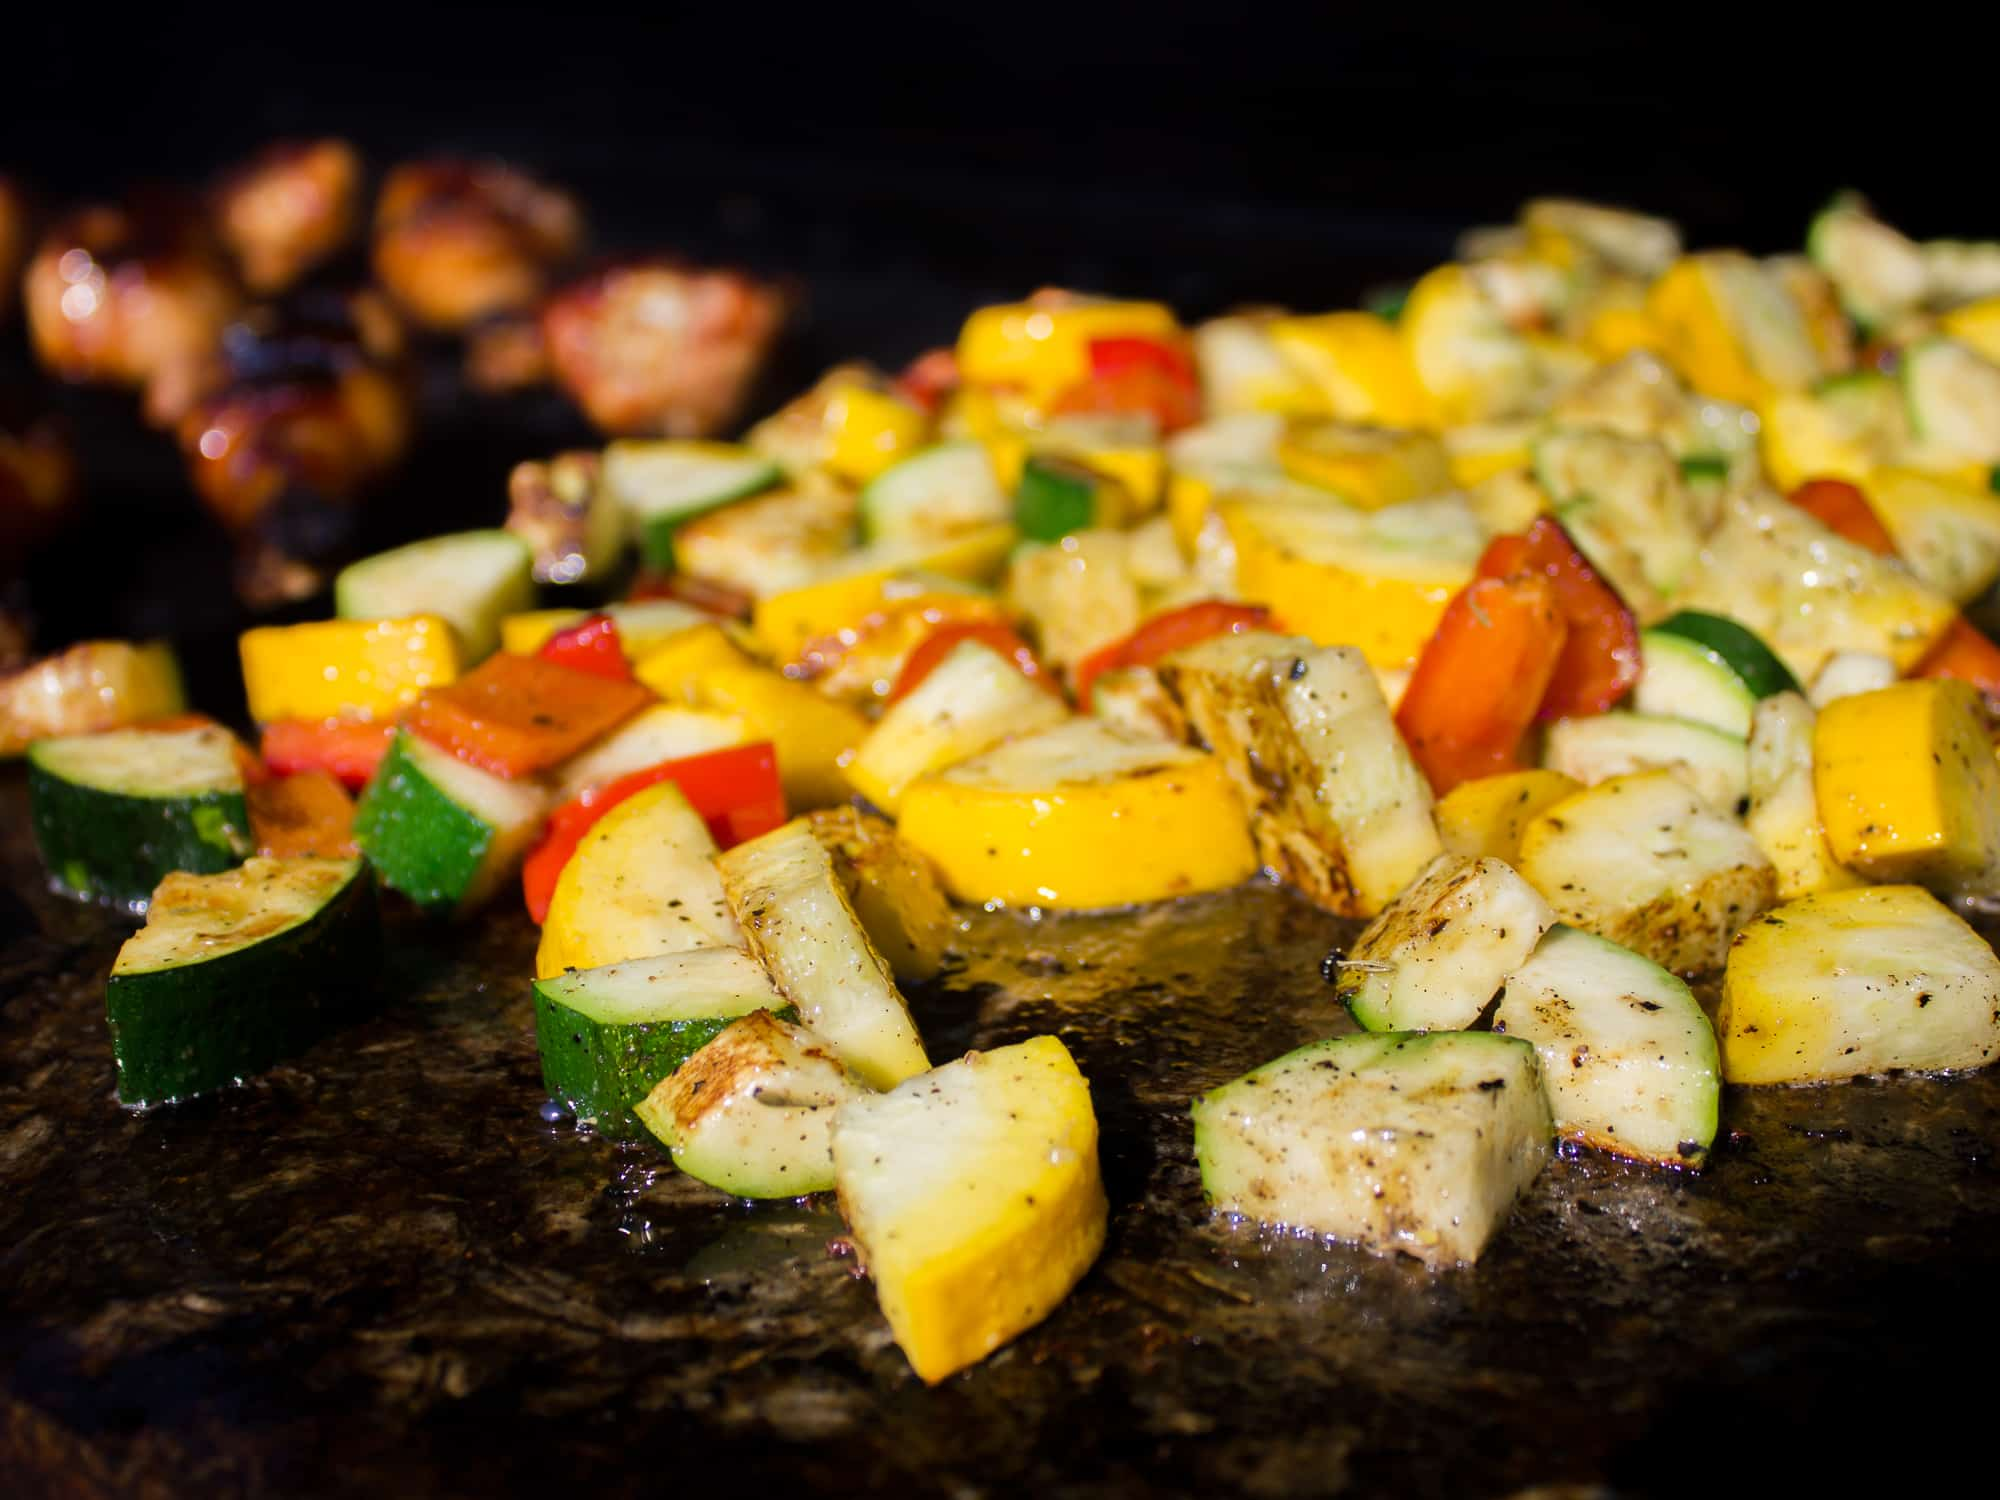 Grill up some summer squash and zucchini